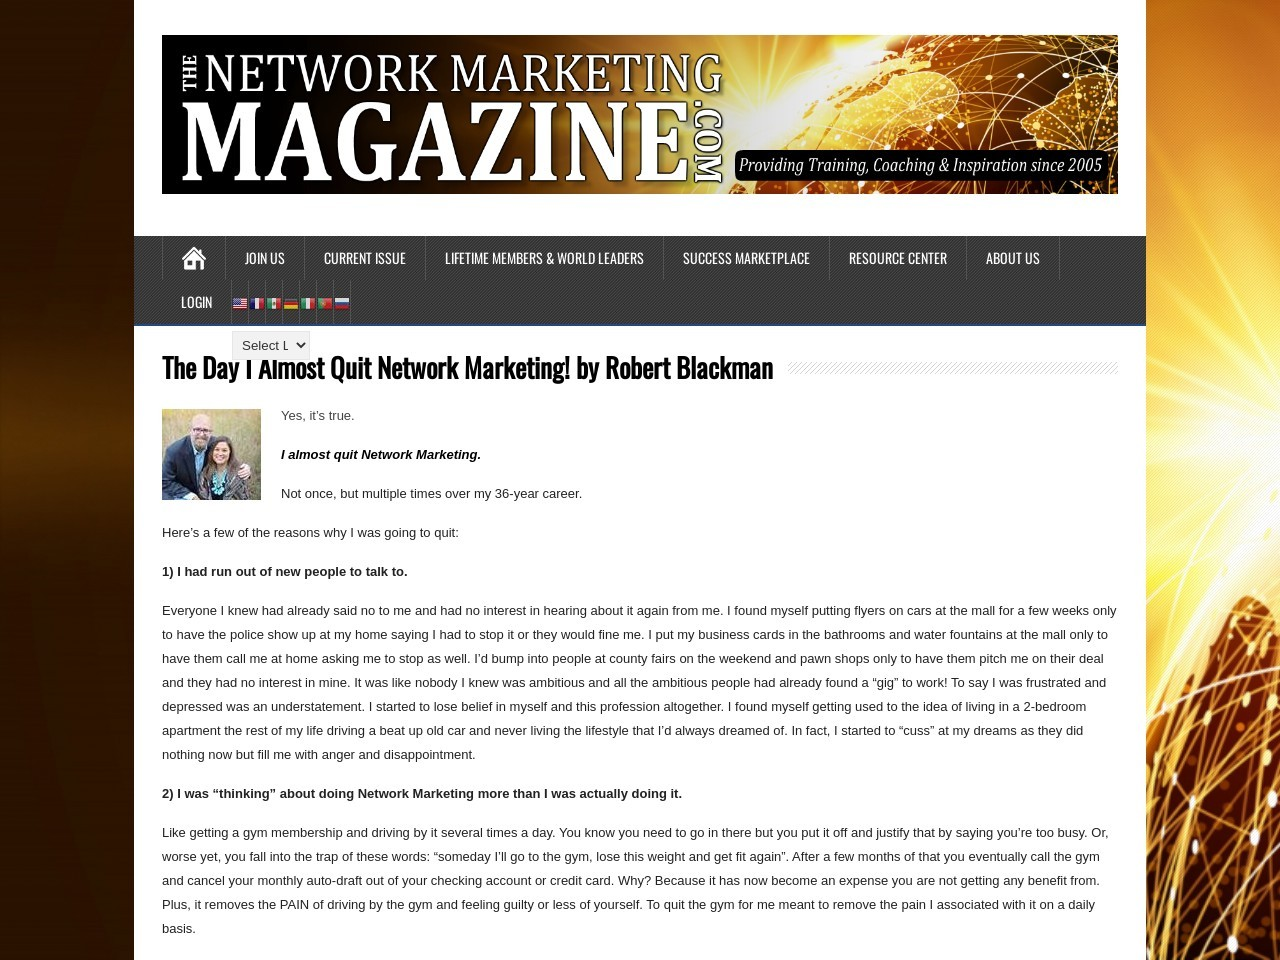 The Day I Almost Quit Network Marketing! by Robert Blackman